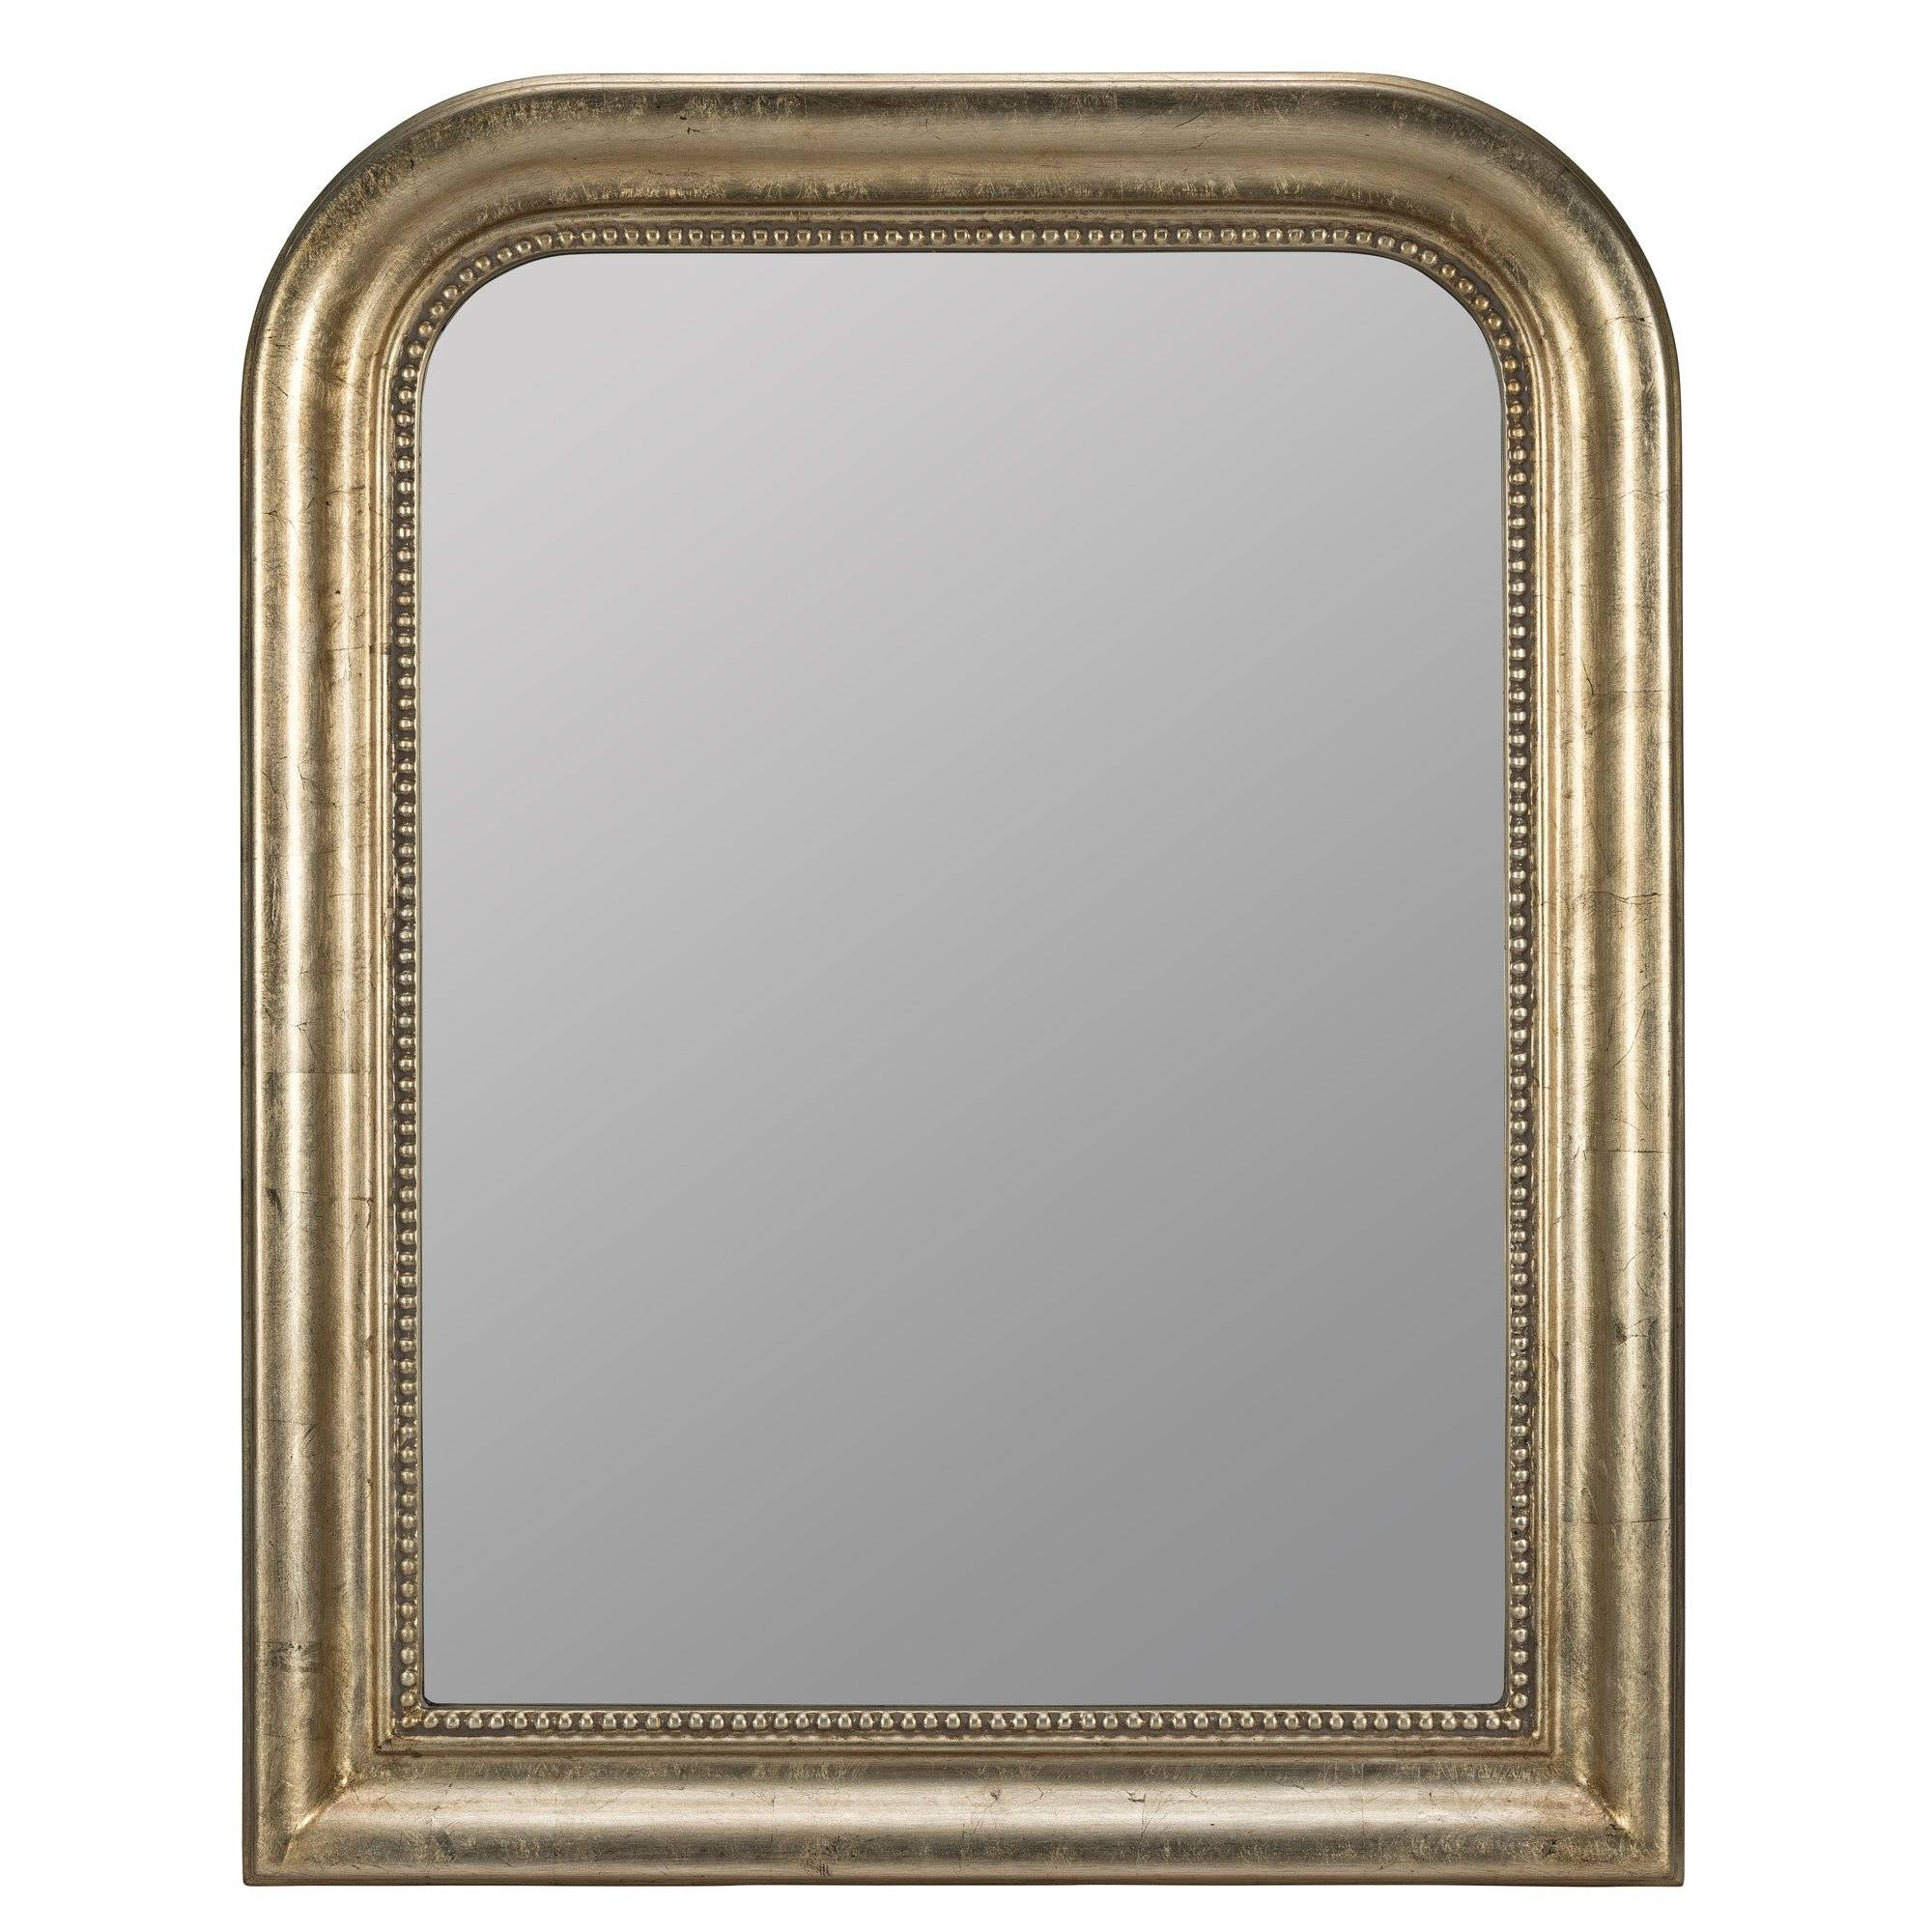 Darby Home Co Antique Champagne Wall Mirror & Reviews | Wayfair throughout Champagne Wall Mirrors (Image 3 of 25)